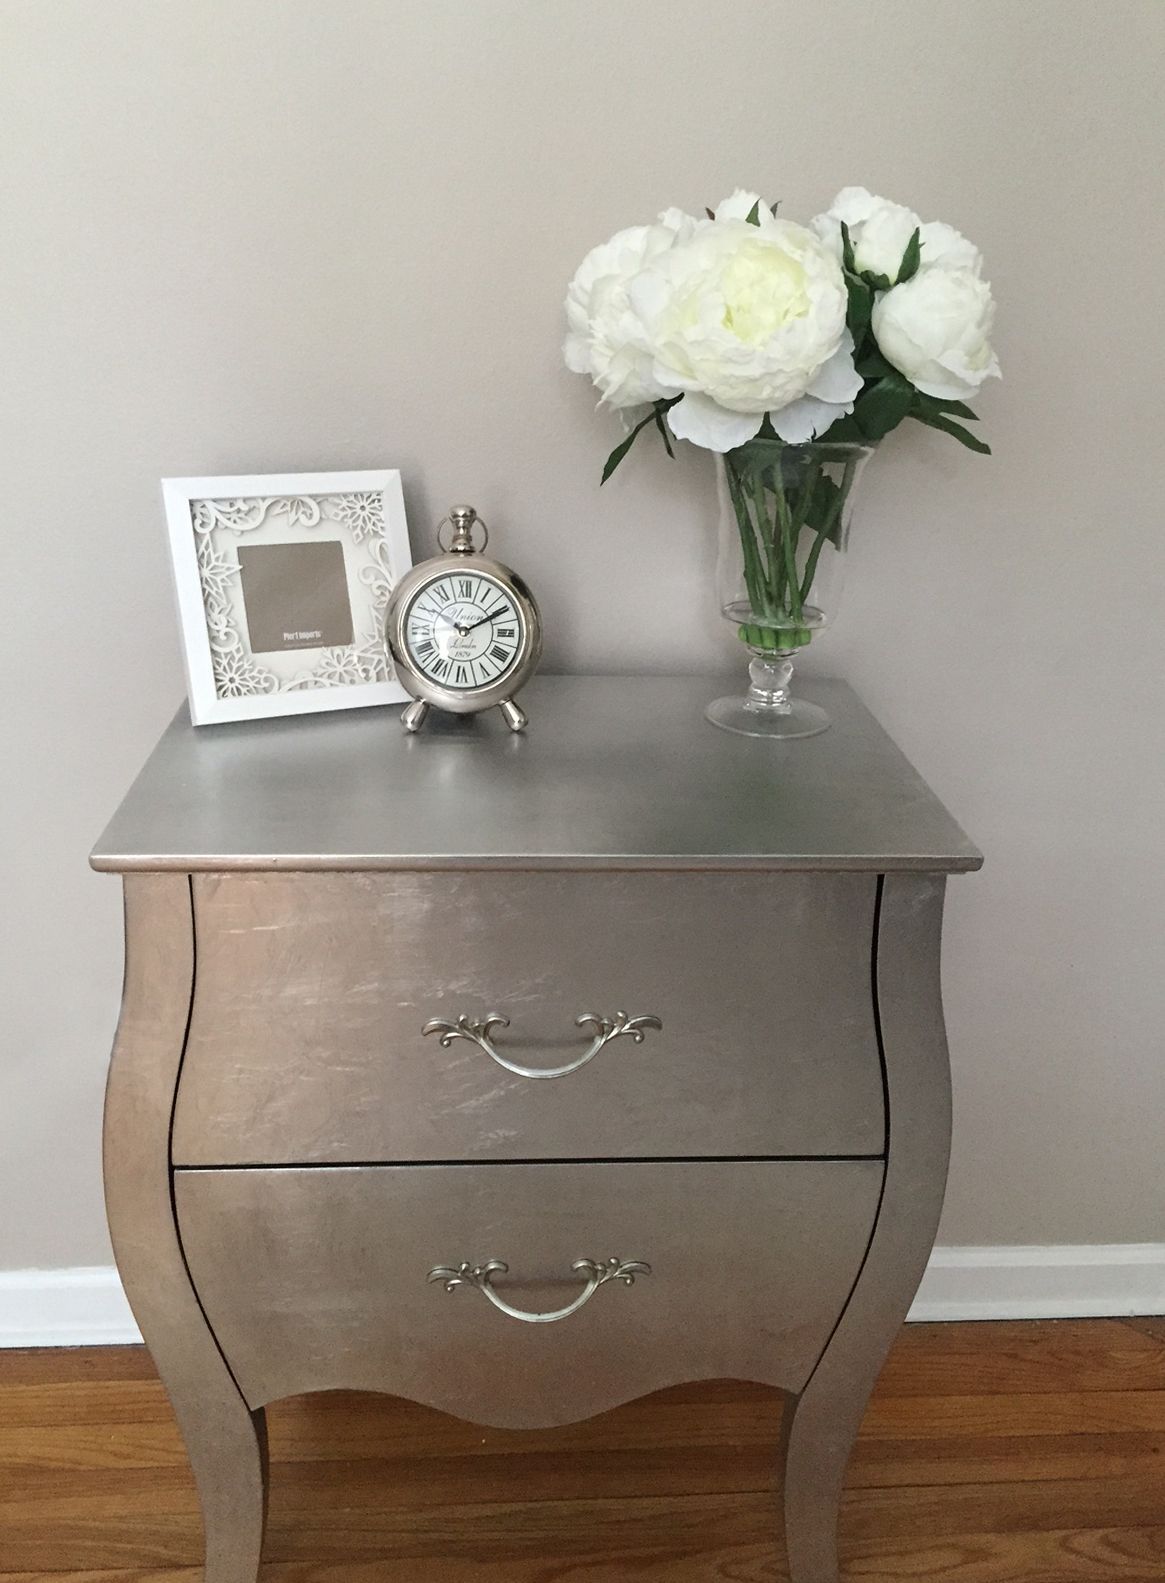 Pier 1 camellia chest and tj maxx faux flowers find console and pier 1 camellia chest and tj maxx faux flowers find console and entry table decor geotapseo Choice Image